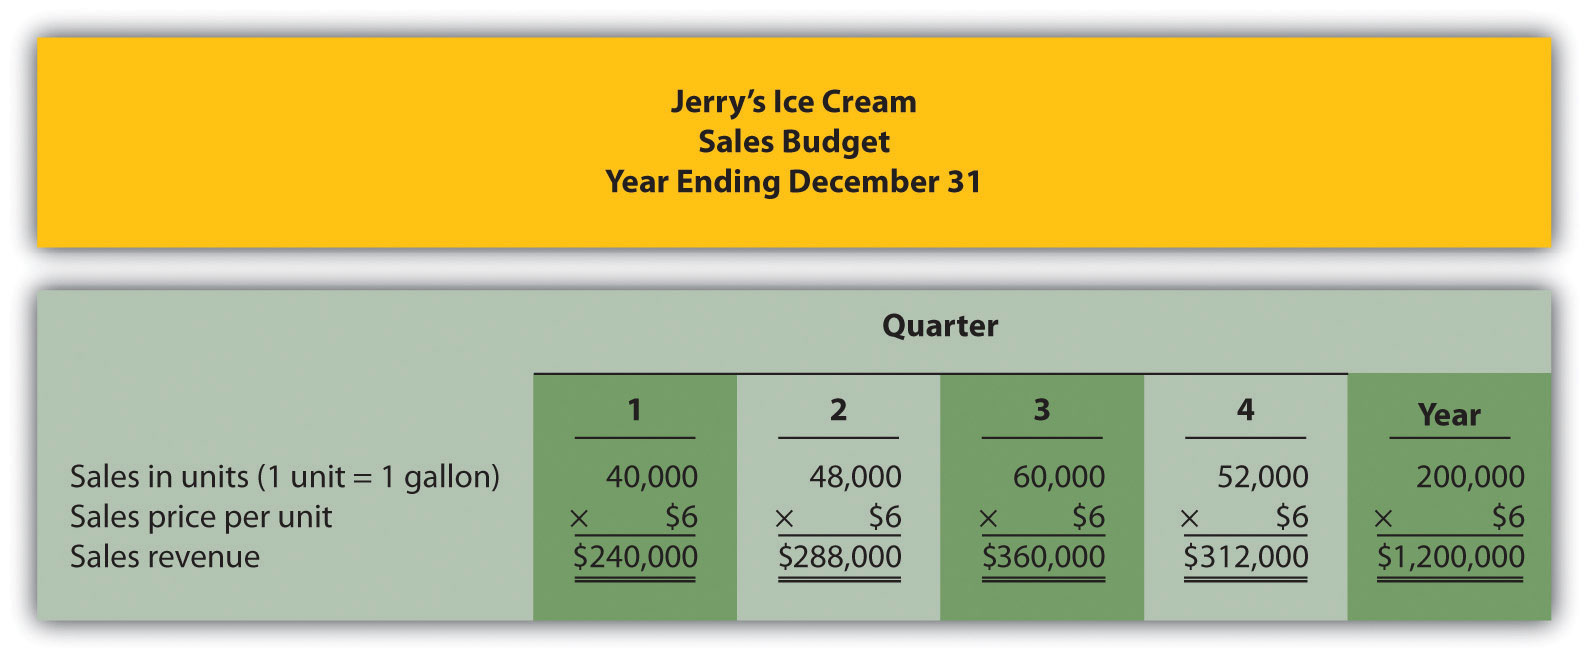 Figure 9.3 Sales Budget For Jerryu0027s Ice Cream